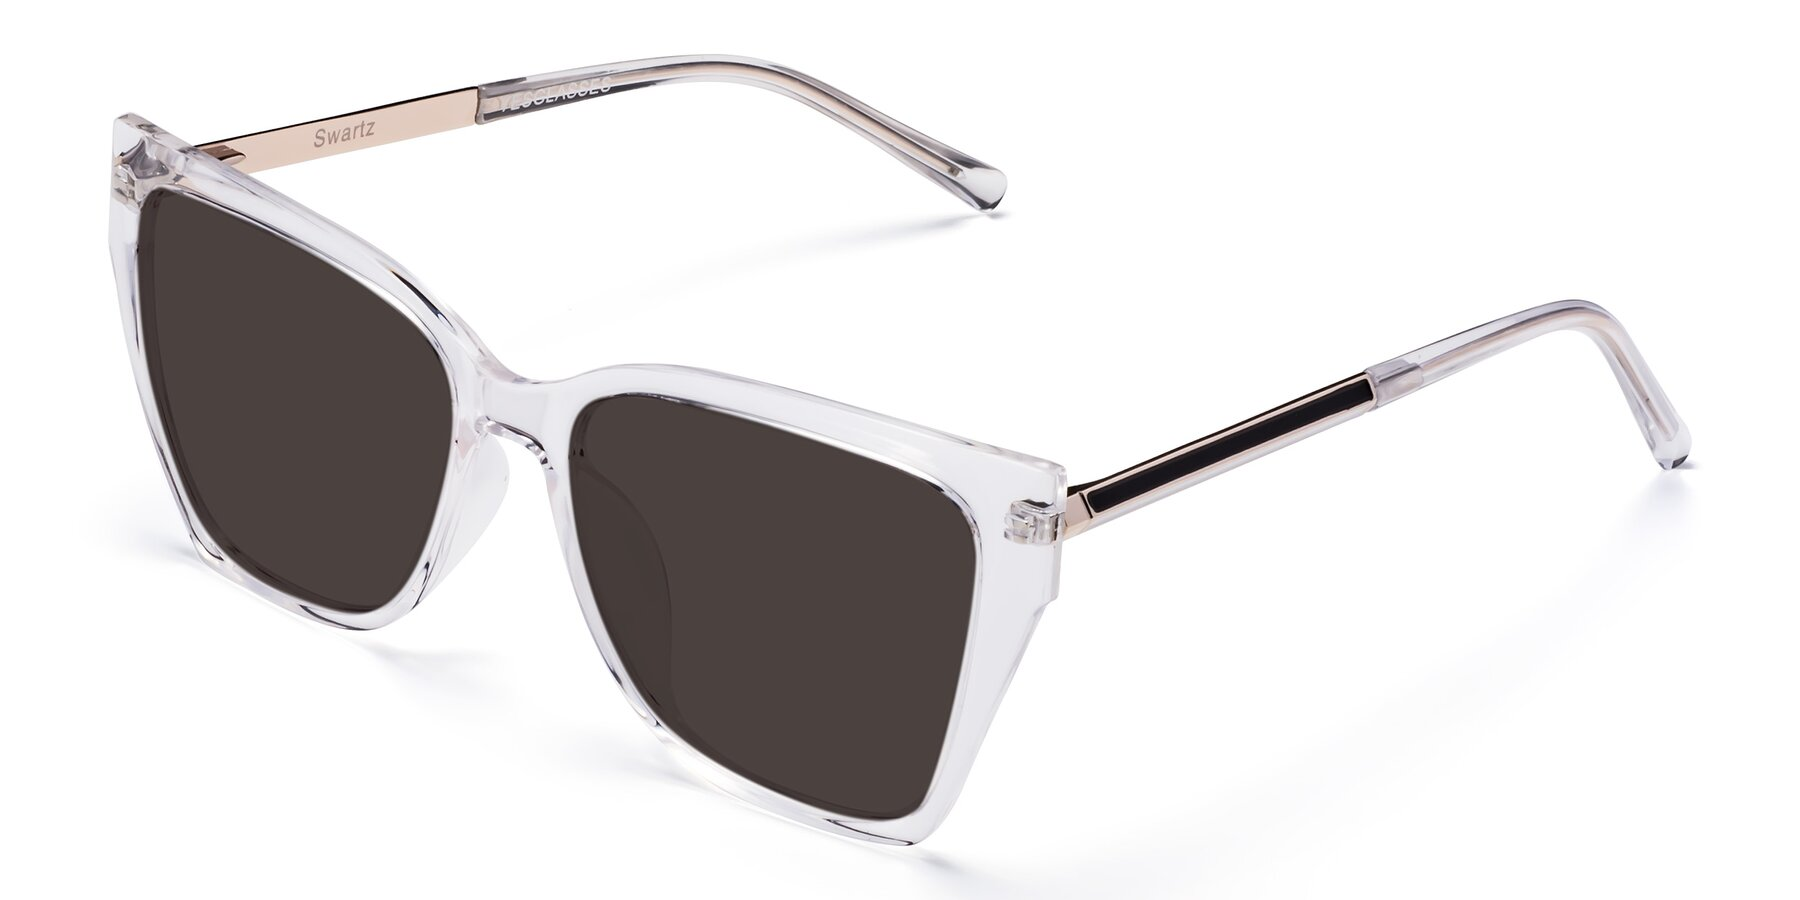 Angle of Swartz in Clear with Gray Tinted Lenses